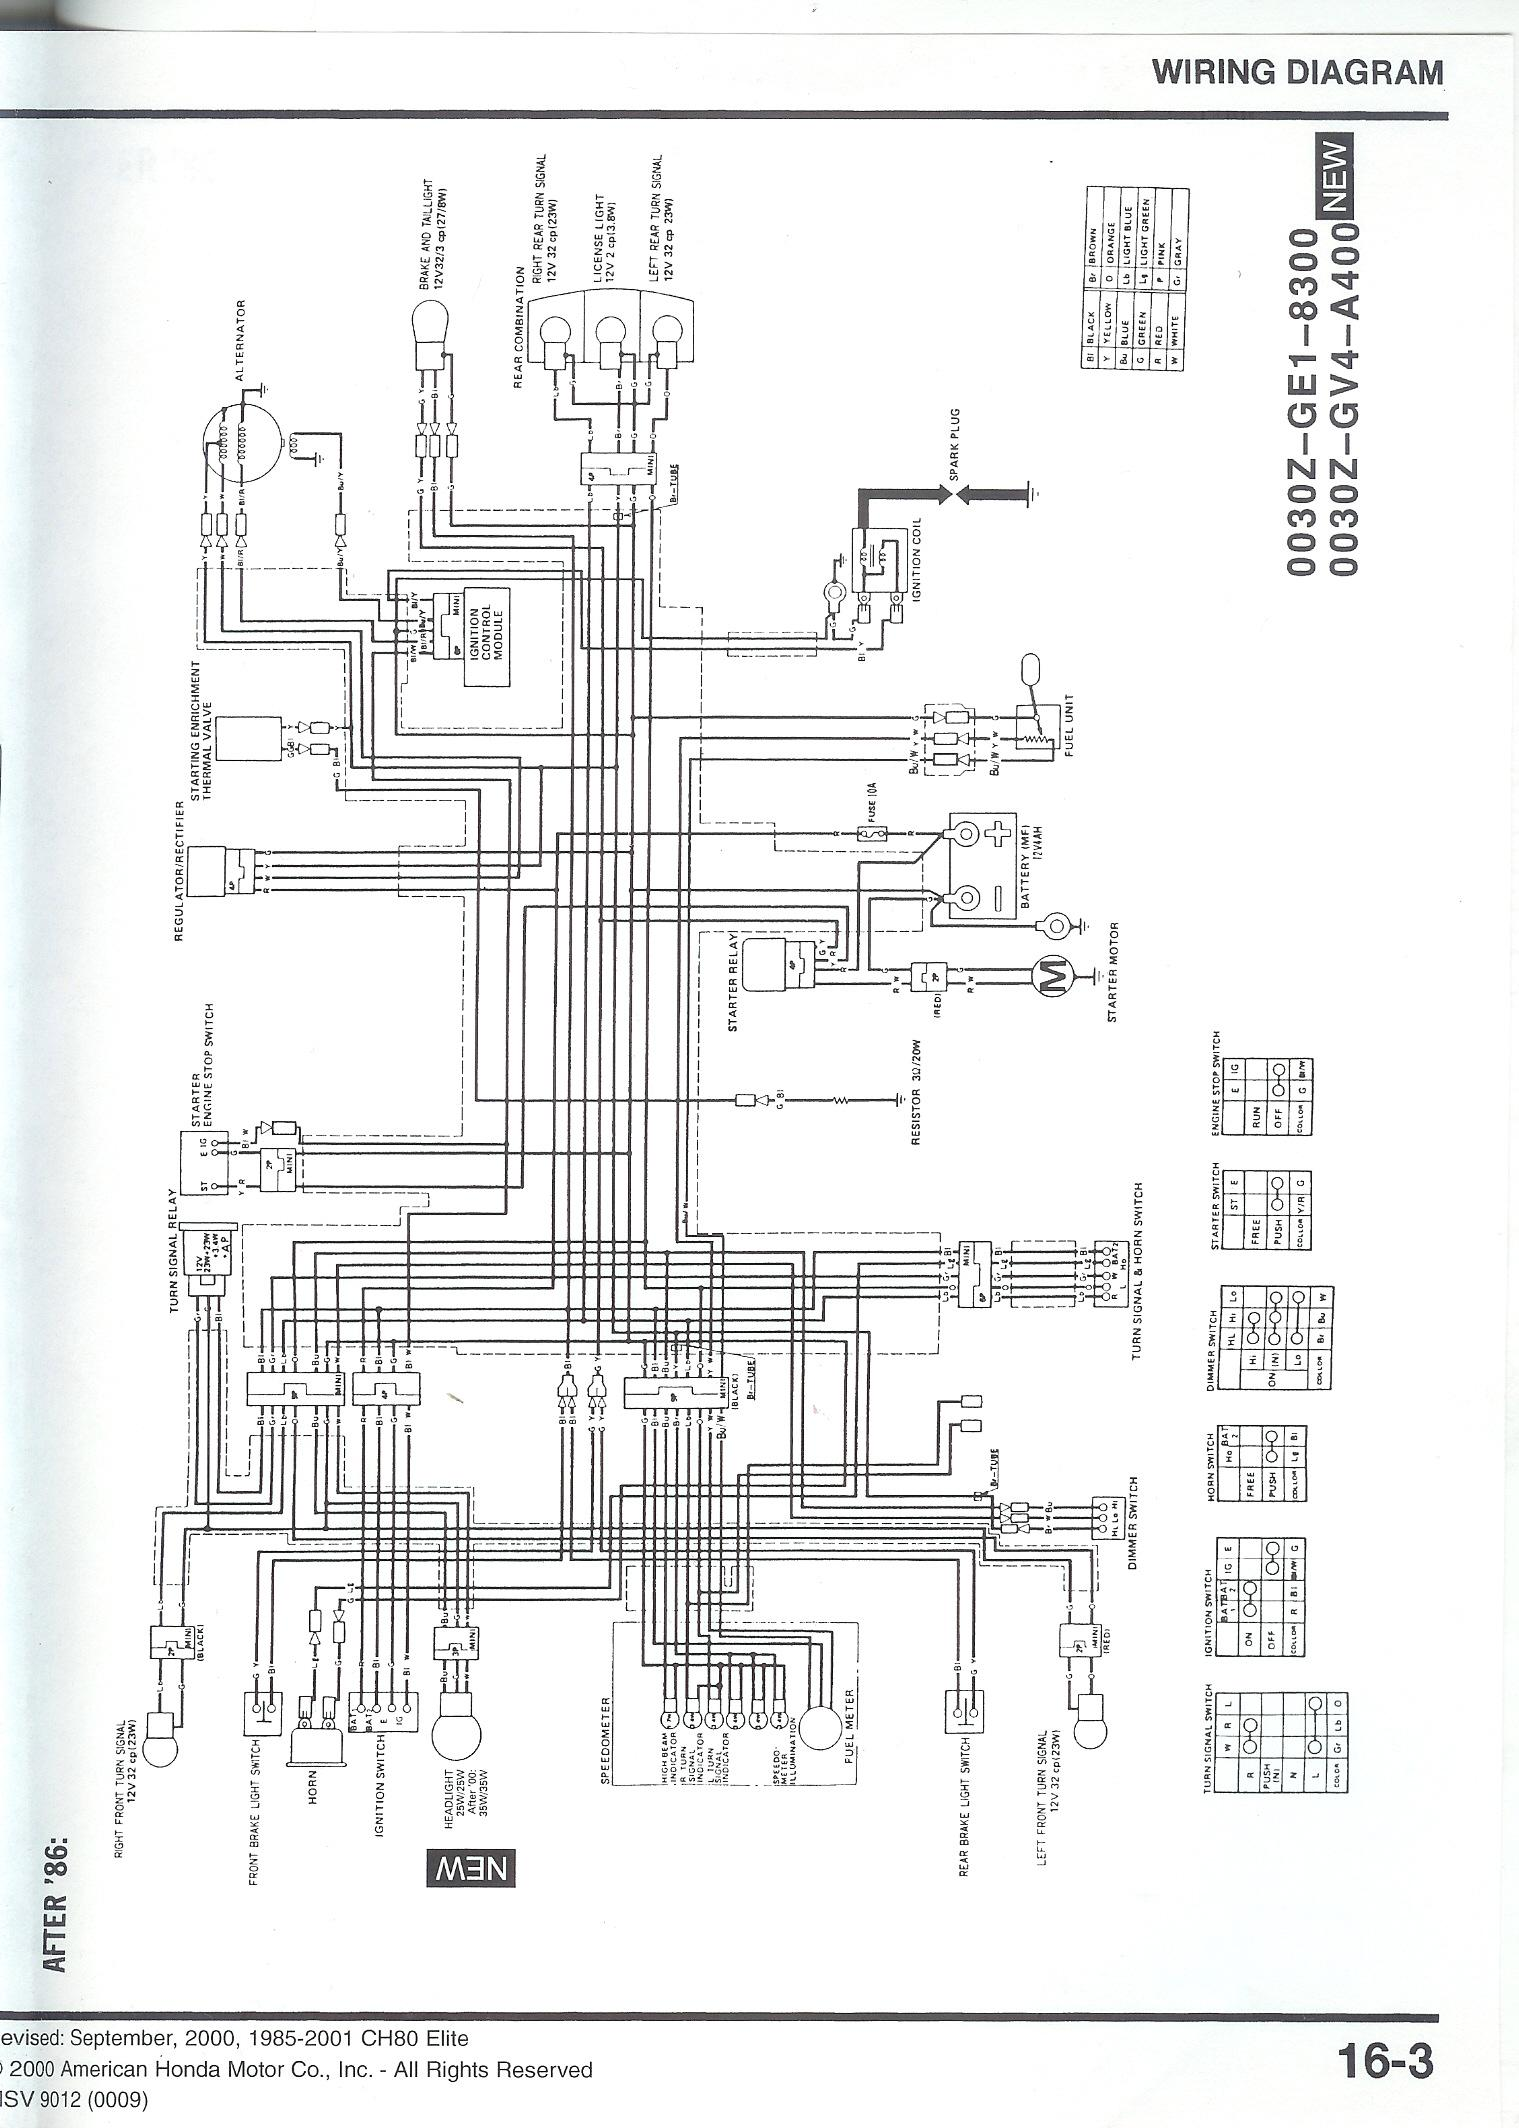 Honda Elite 80 Wiring Diagram Manual Of Car Boyo Stereo Avs3015 Ch80 Maintenance Schedule Rh Jacksscootershop Com